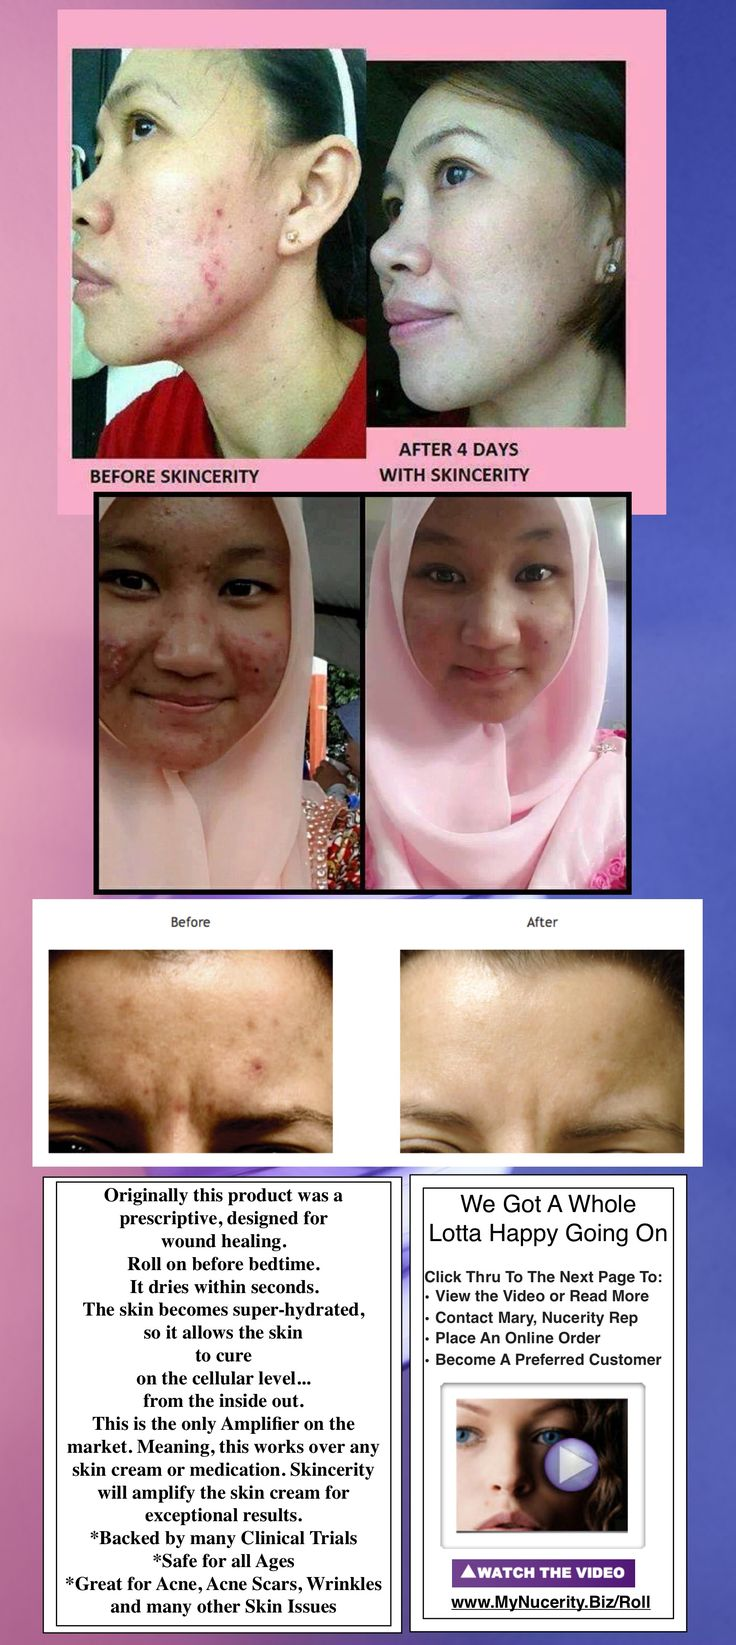 Acne Before & After Pics - Effective & Quick Treatment for acne, acne scars, wrinkles and other skin issues. www.Roll.MyNucerity.Biz